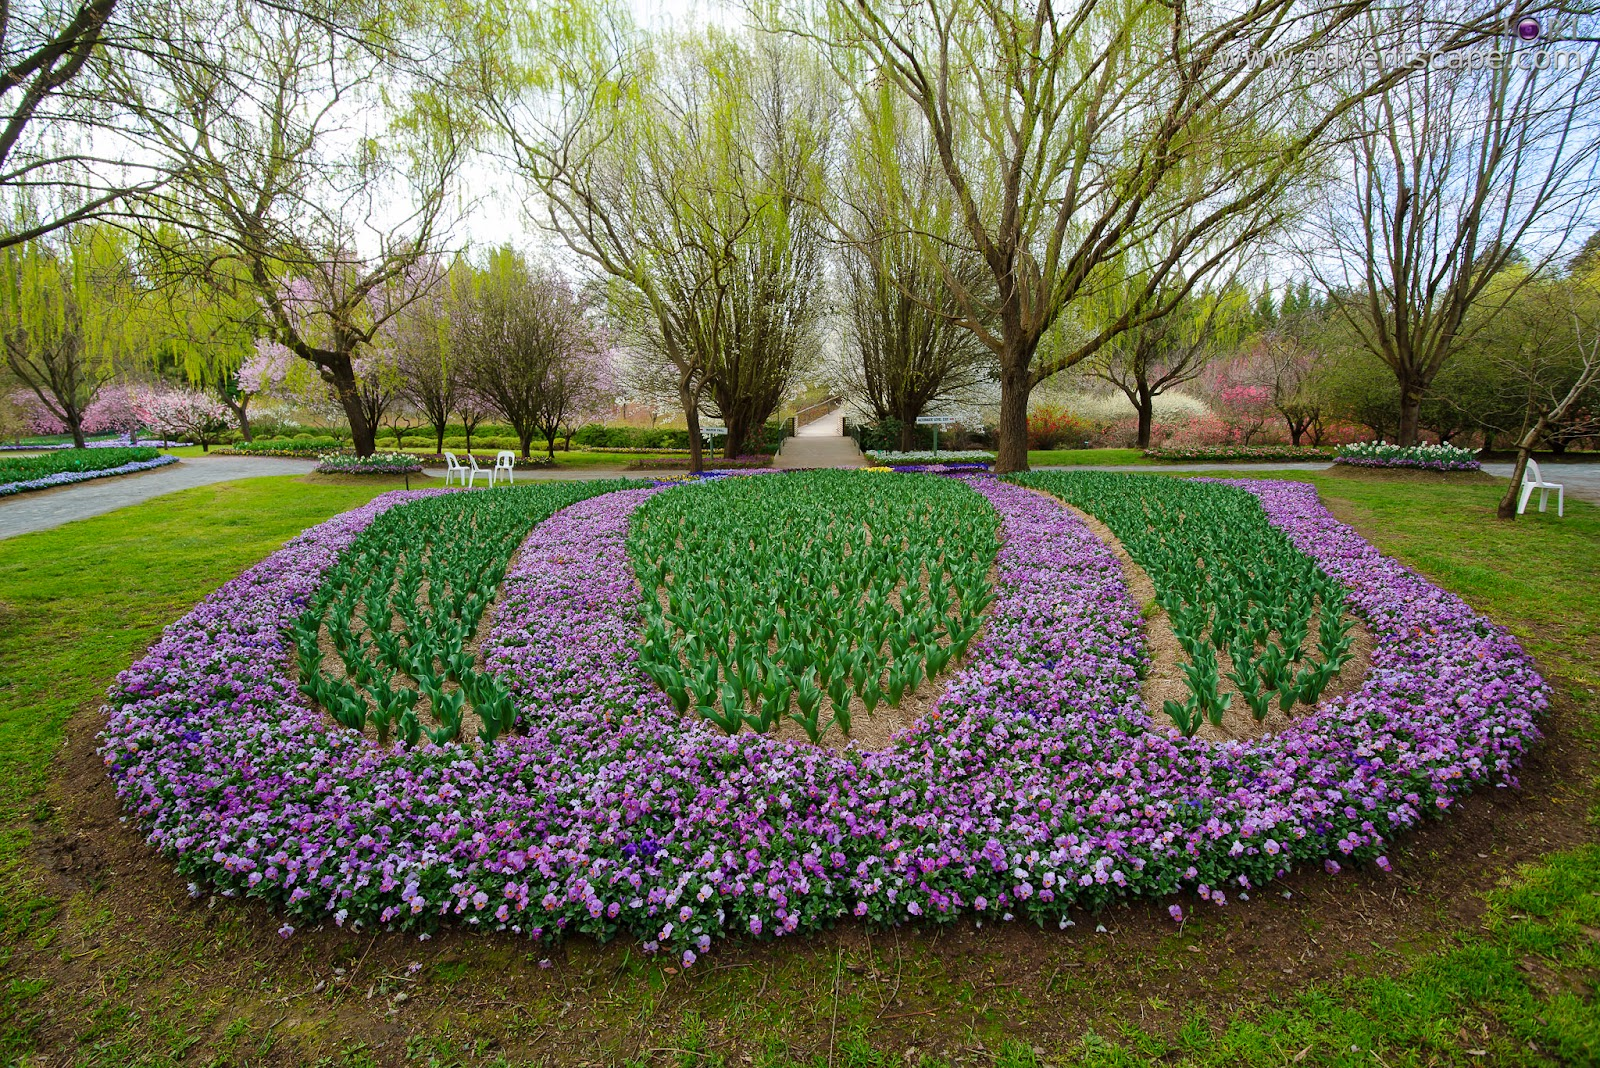 Philip Avellana, adventscape, iori, Tulip Top Gardens, garden, spring, NSW, New South Wales, Sutton, Old Federal Highway, Bywong, 2621, pathways